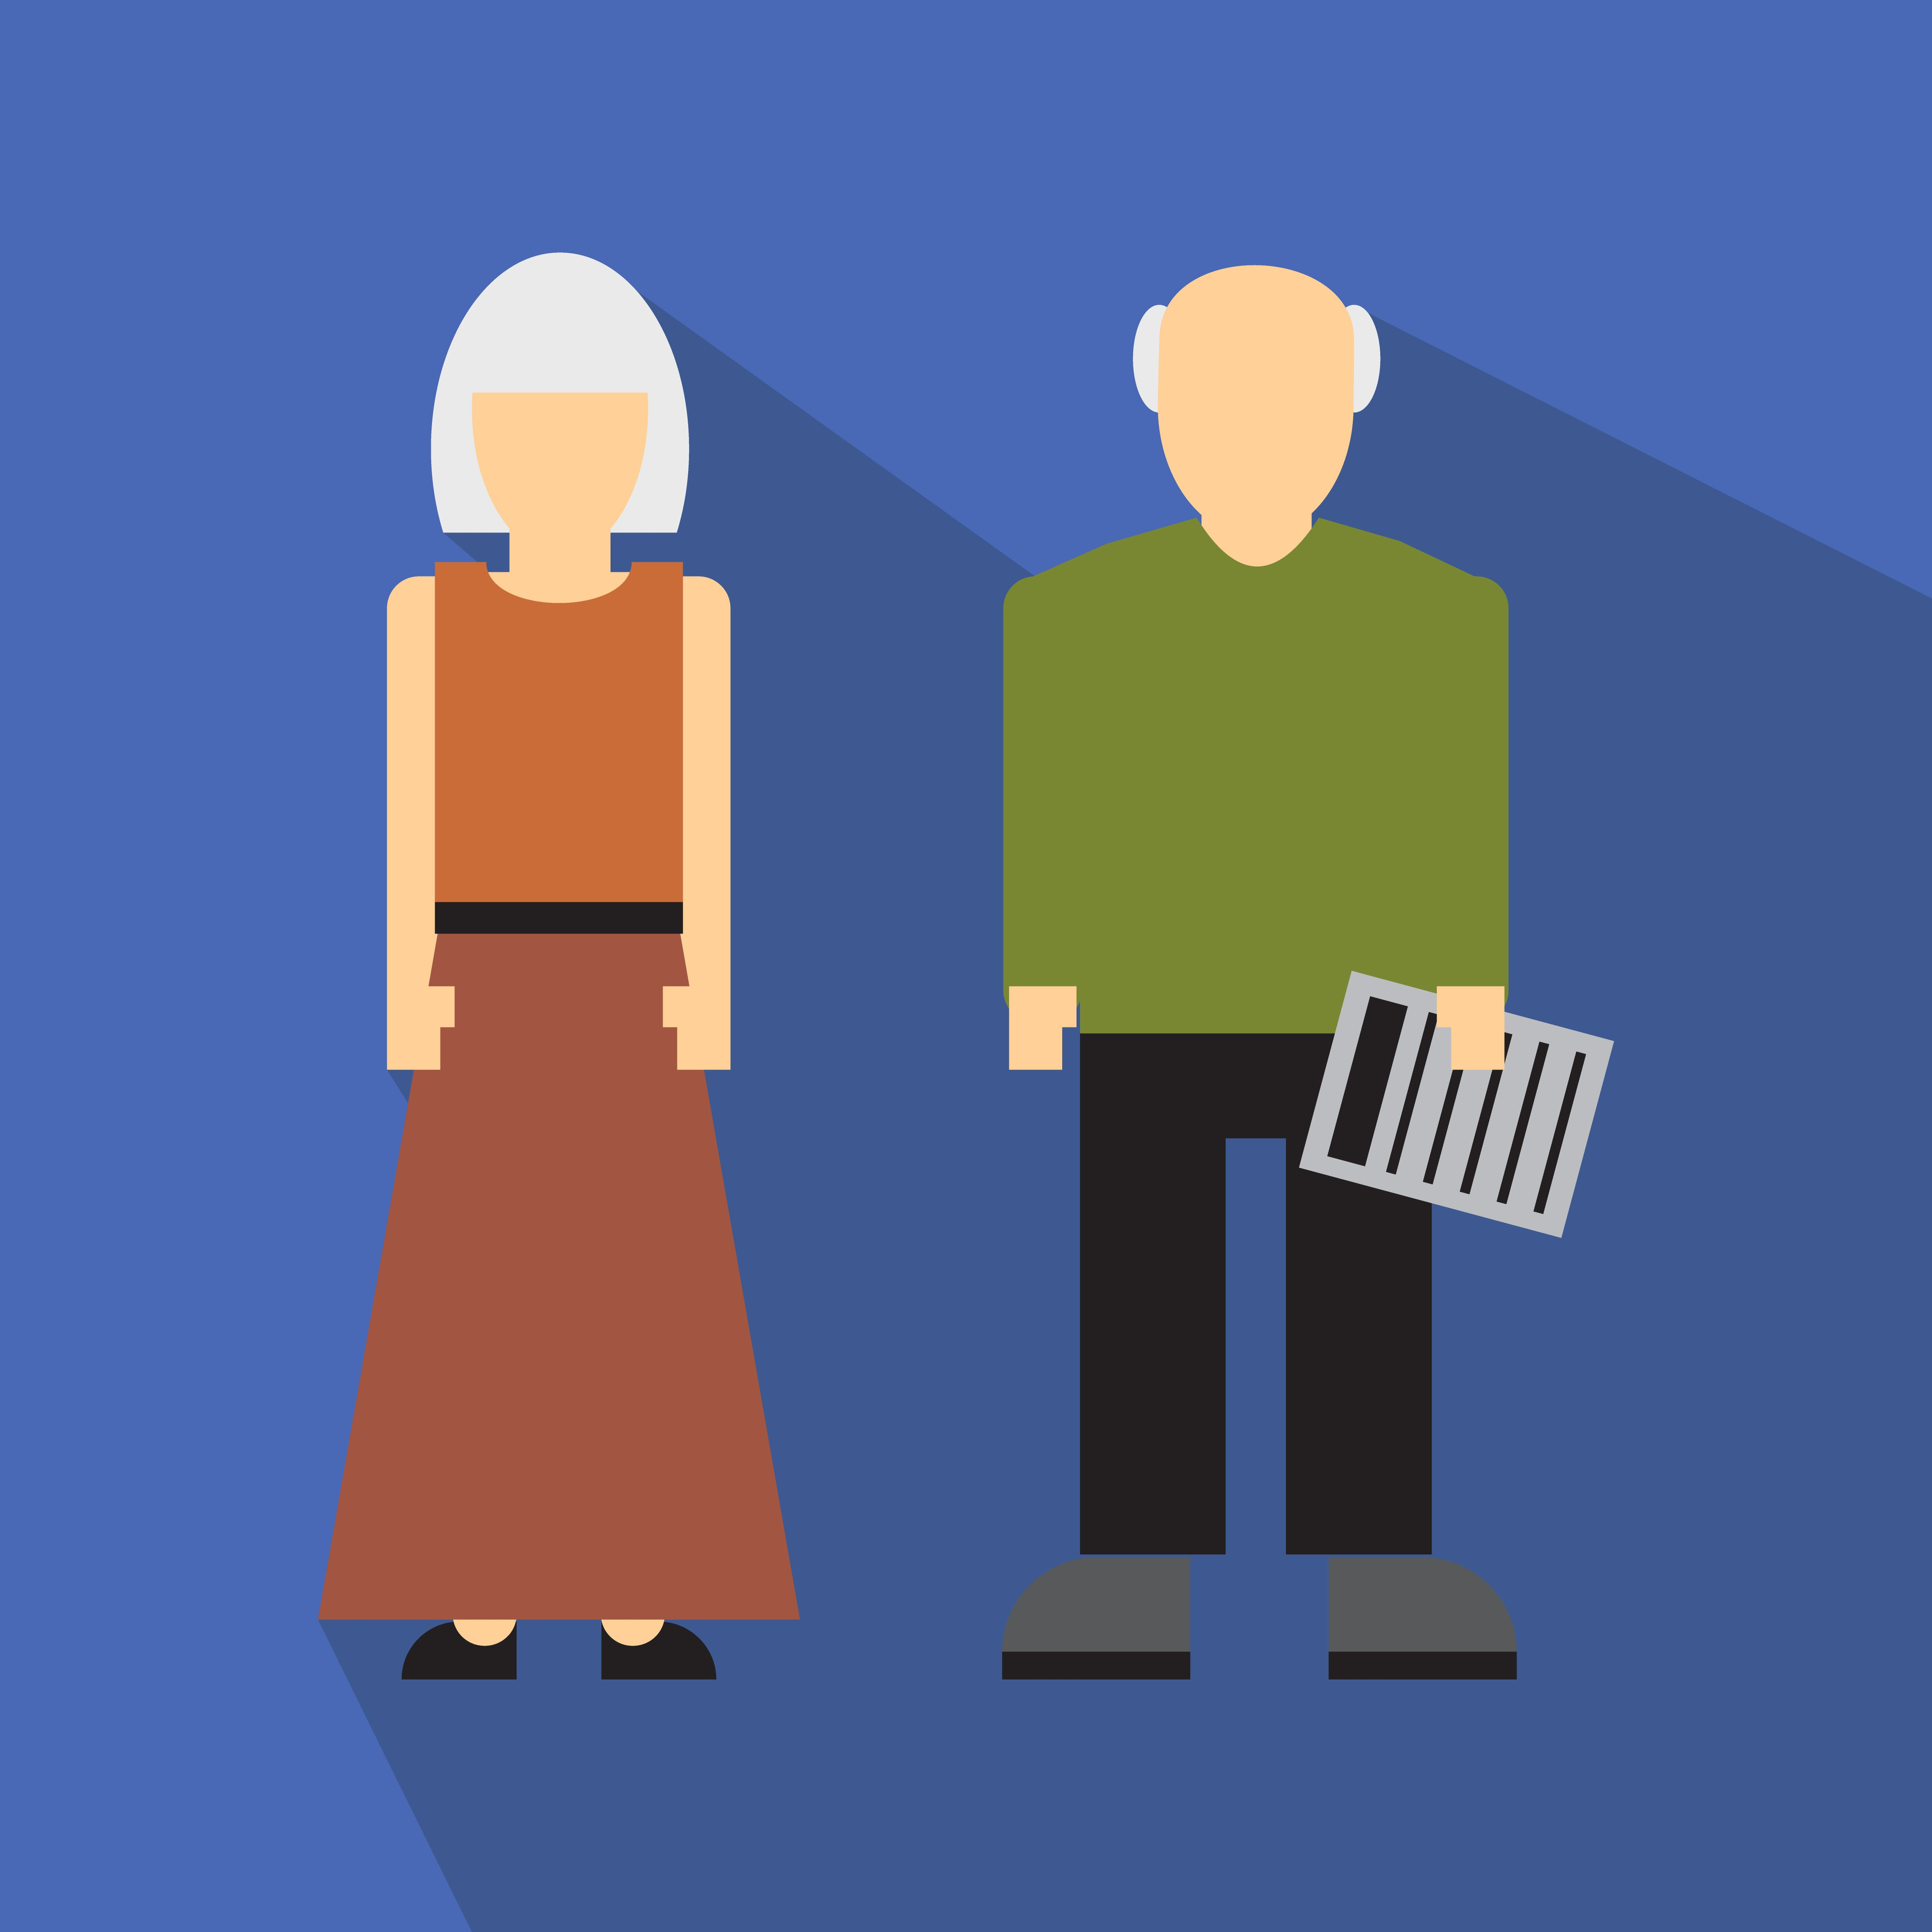 Man and woman in old age flat icon isolated on white background